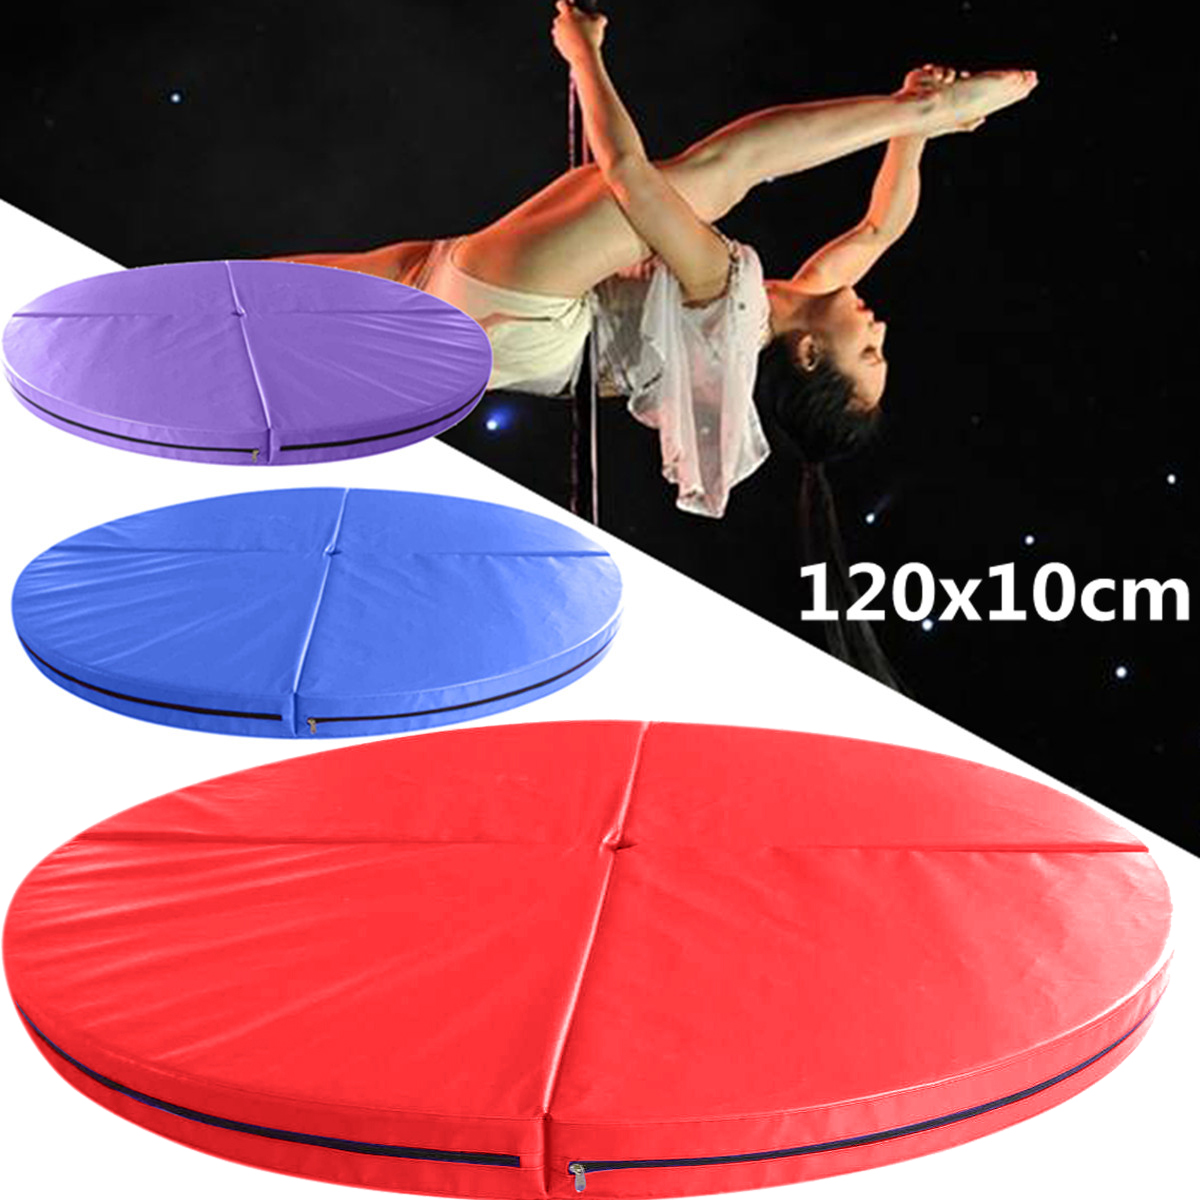 Crash Mats Australia Details About 120x10cm Foldable Pole Dance Mat Yoga Exercise Safety Dancing Cushion Crash Mat